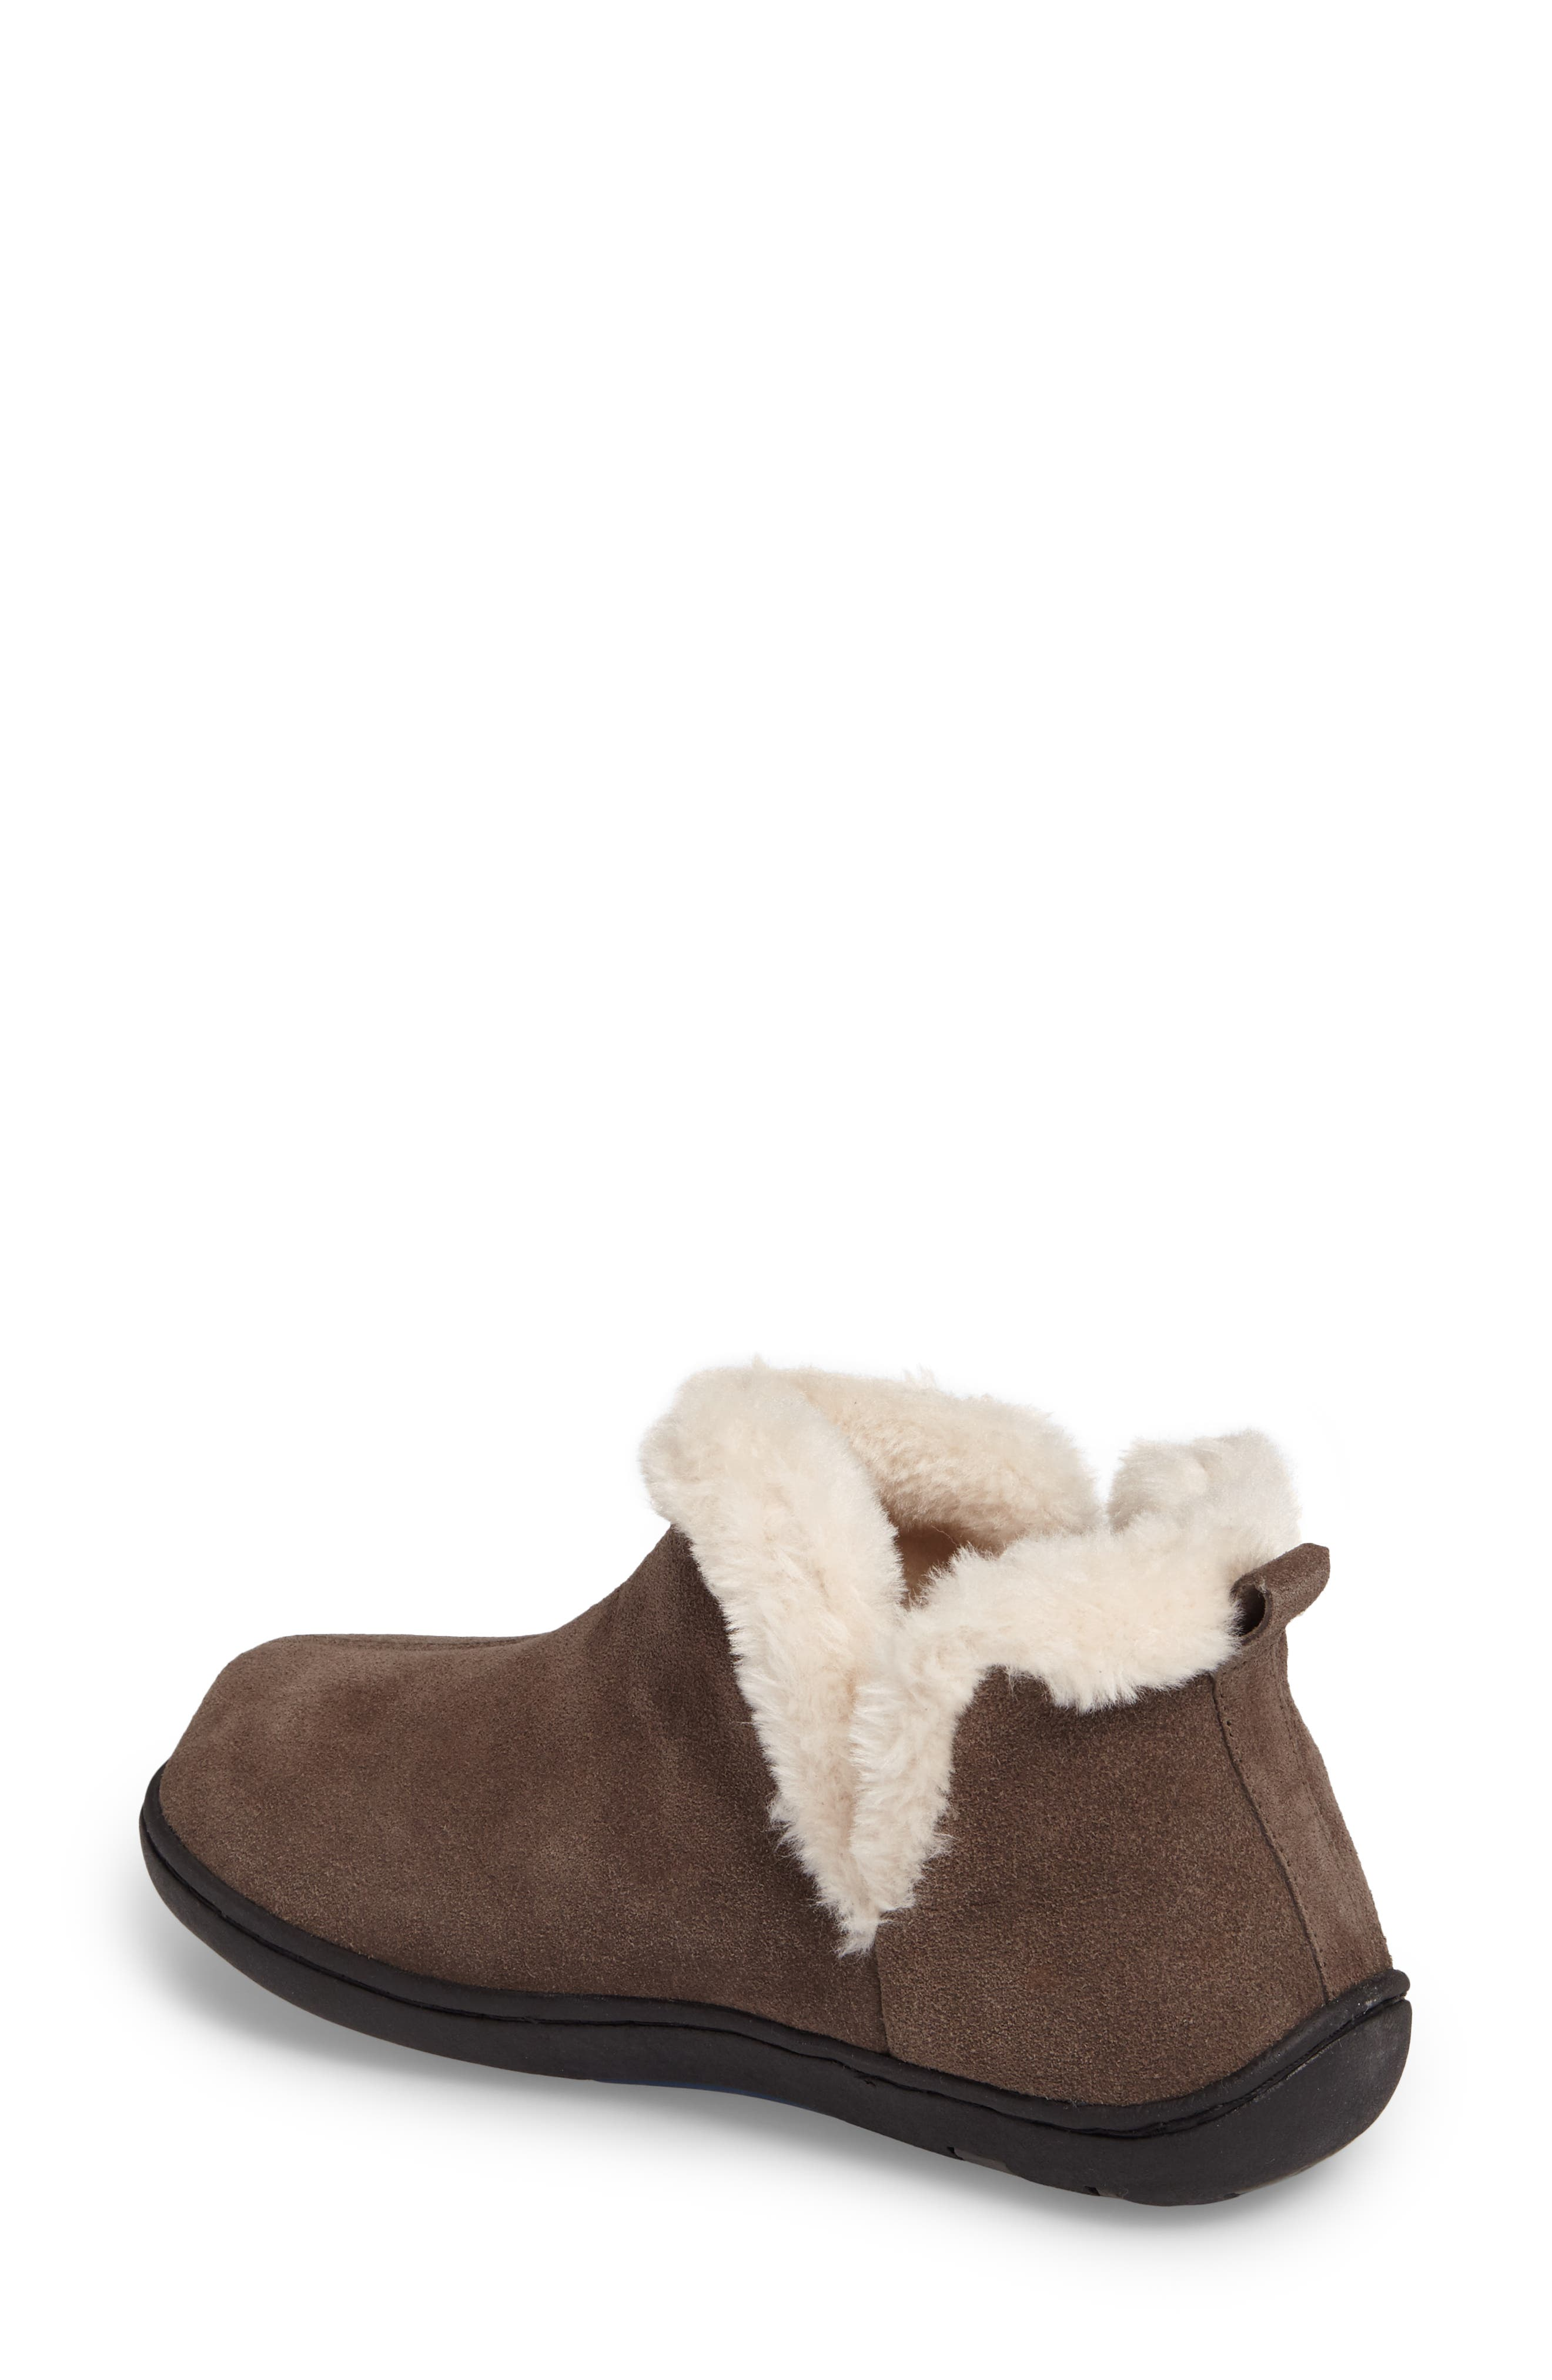 Vallery Bootie Slipper,                             Alternate thumbnail 2, color,                             GRAY SUEDE